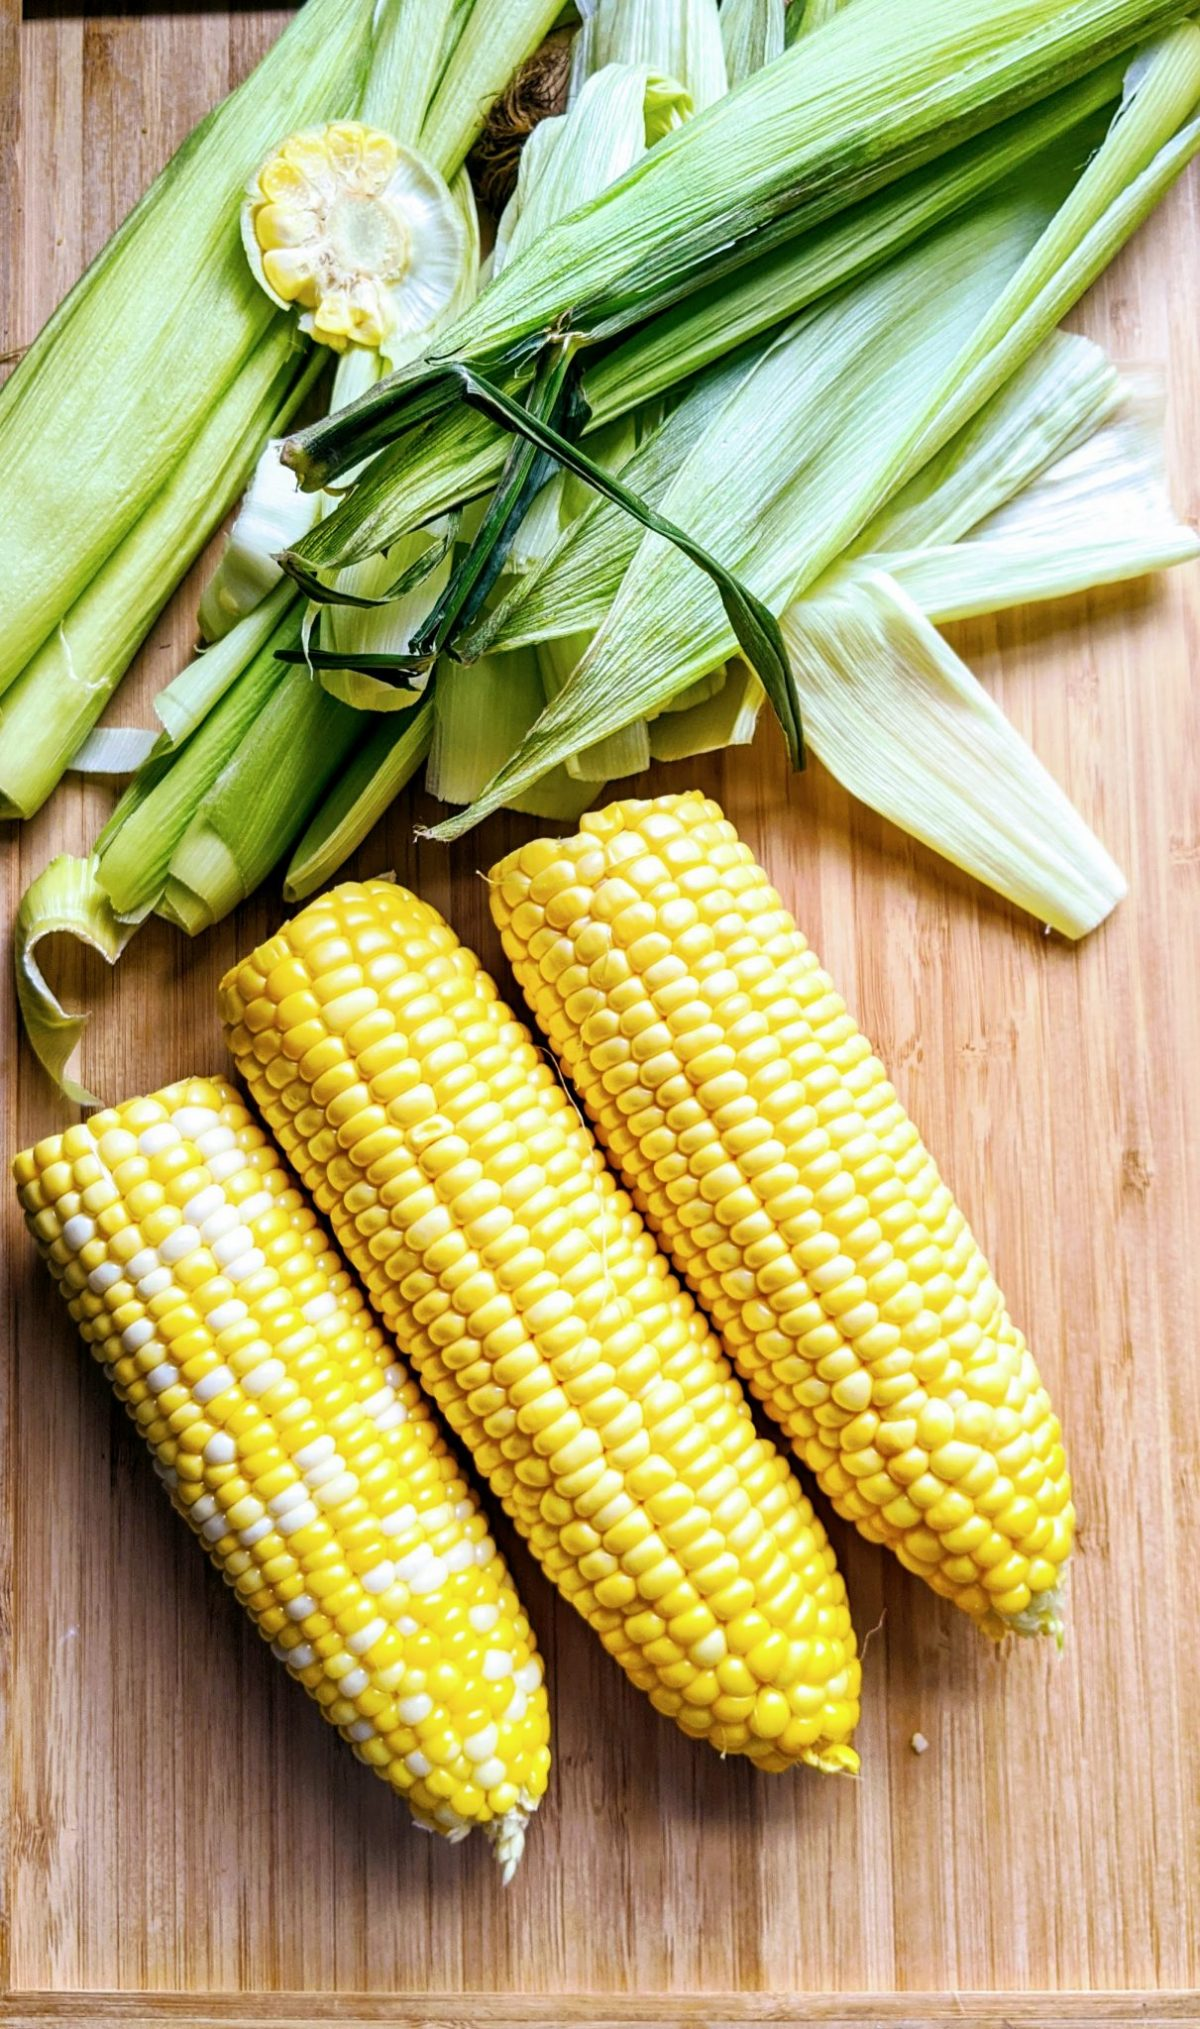 Three pieces of corn on the cob with husks shucked off